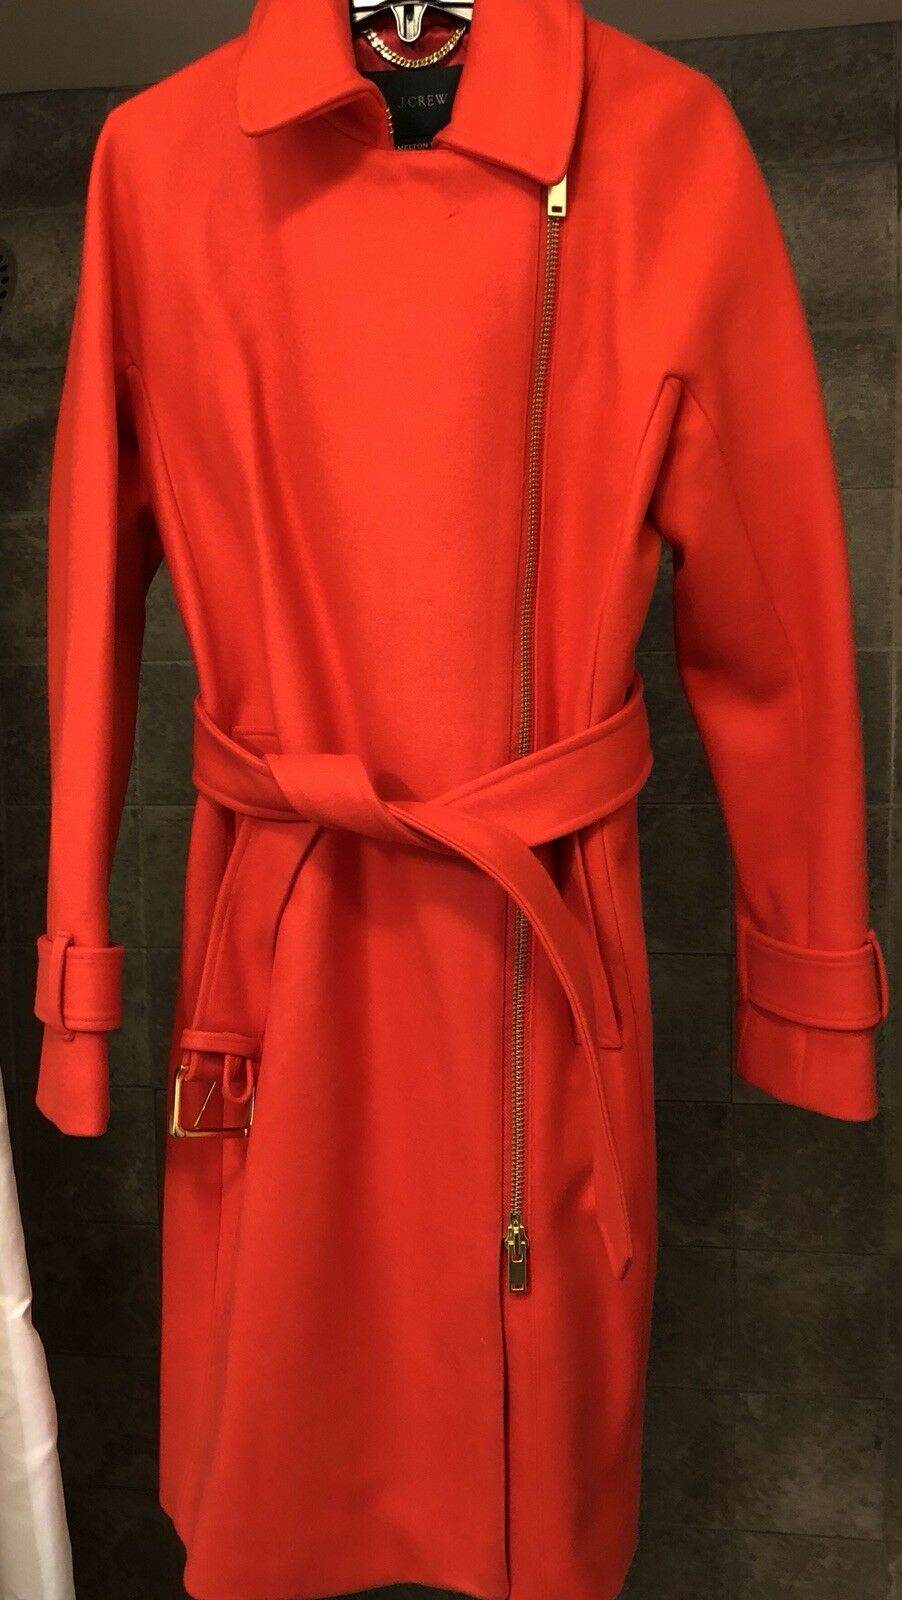 J.CREW BELTED ZIP TRENCH COAT IN WOOL MELTON SIZE 0 BRILLIANT FLAME E4396